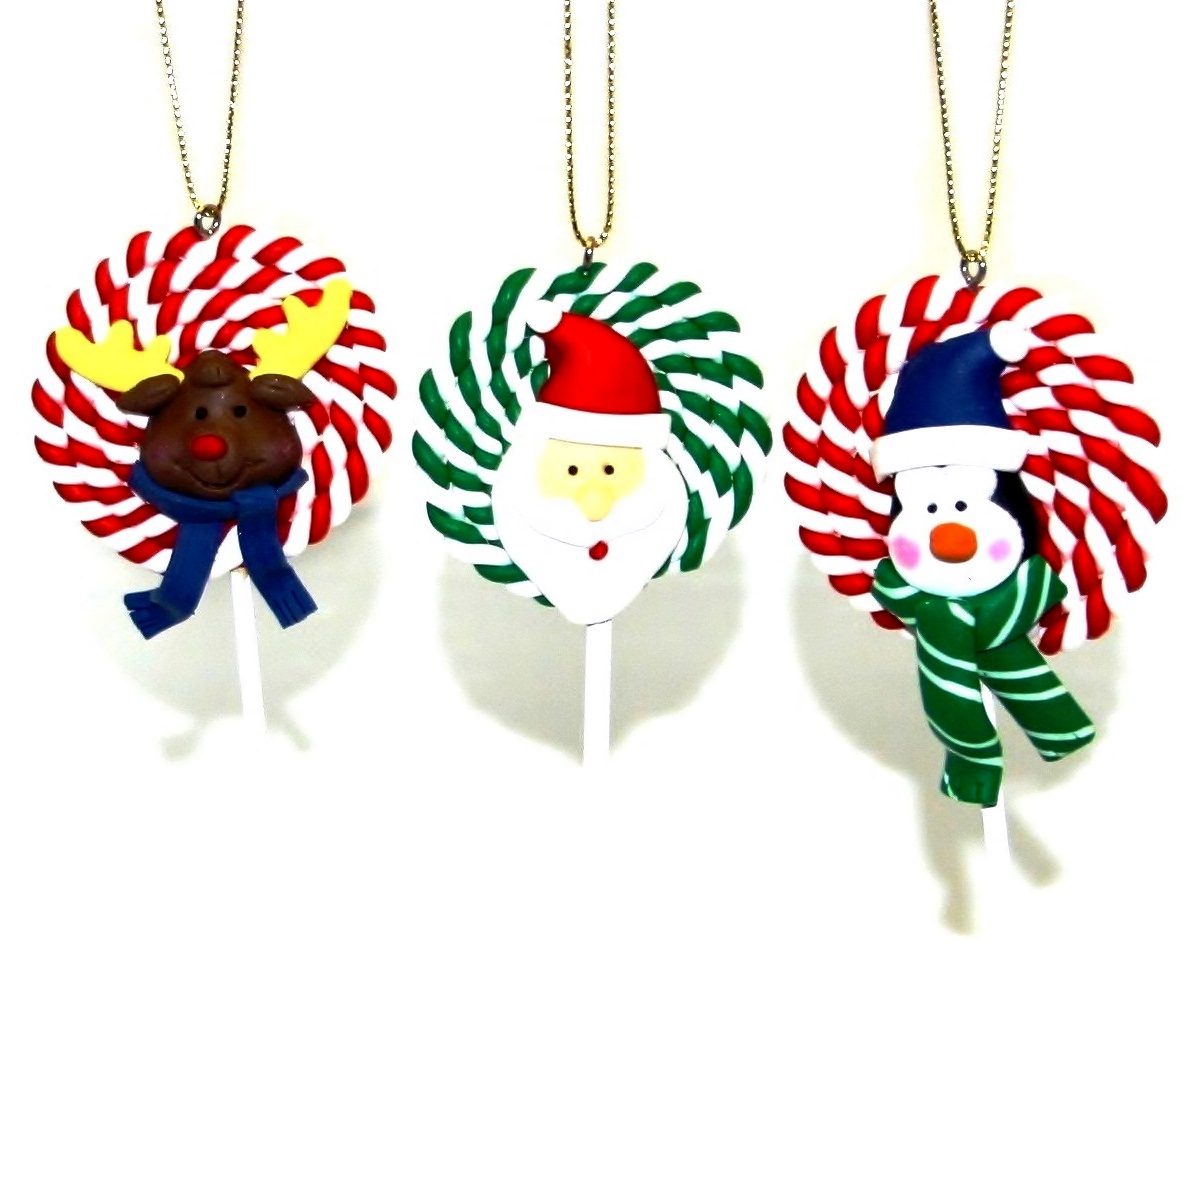 LOLLIPOPS - Clay Christmas Tree Ornaments Handmade Xmas Decorations ...